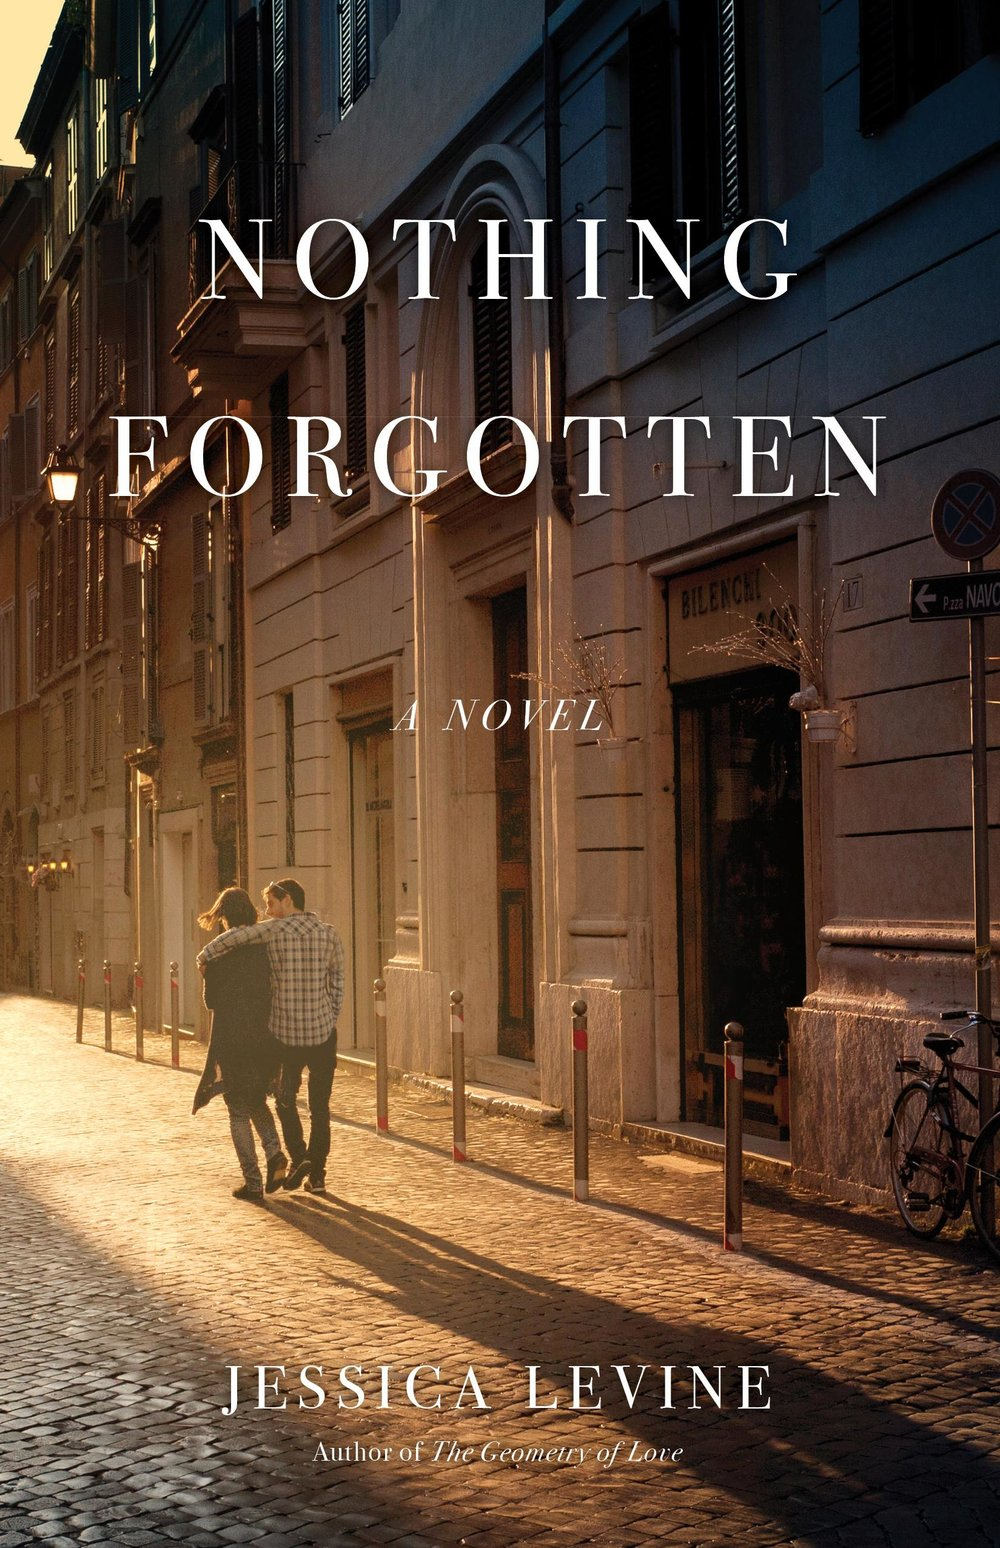 Jessica_Levine_Nothing_Forrgotten_bookcover.jpg